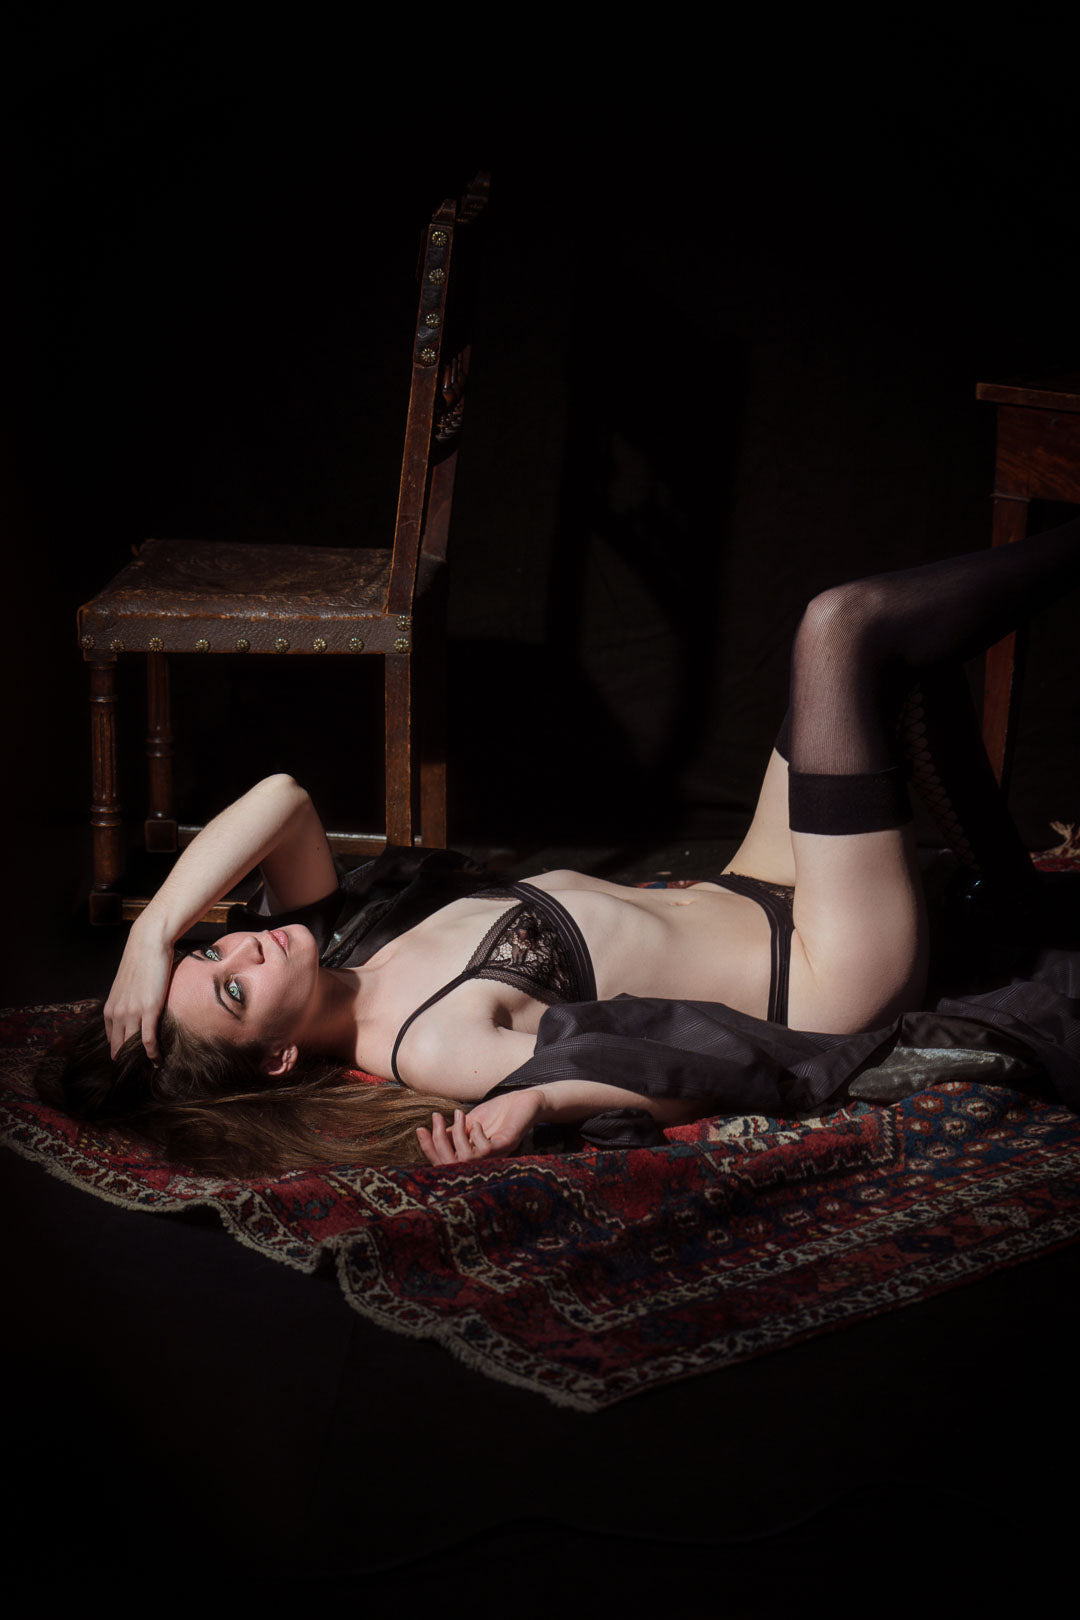 Woman in black lingerie lying on a carpet in a boudoir atmosphere